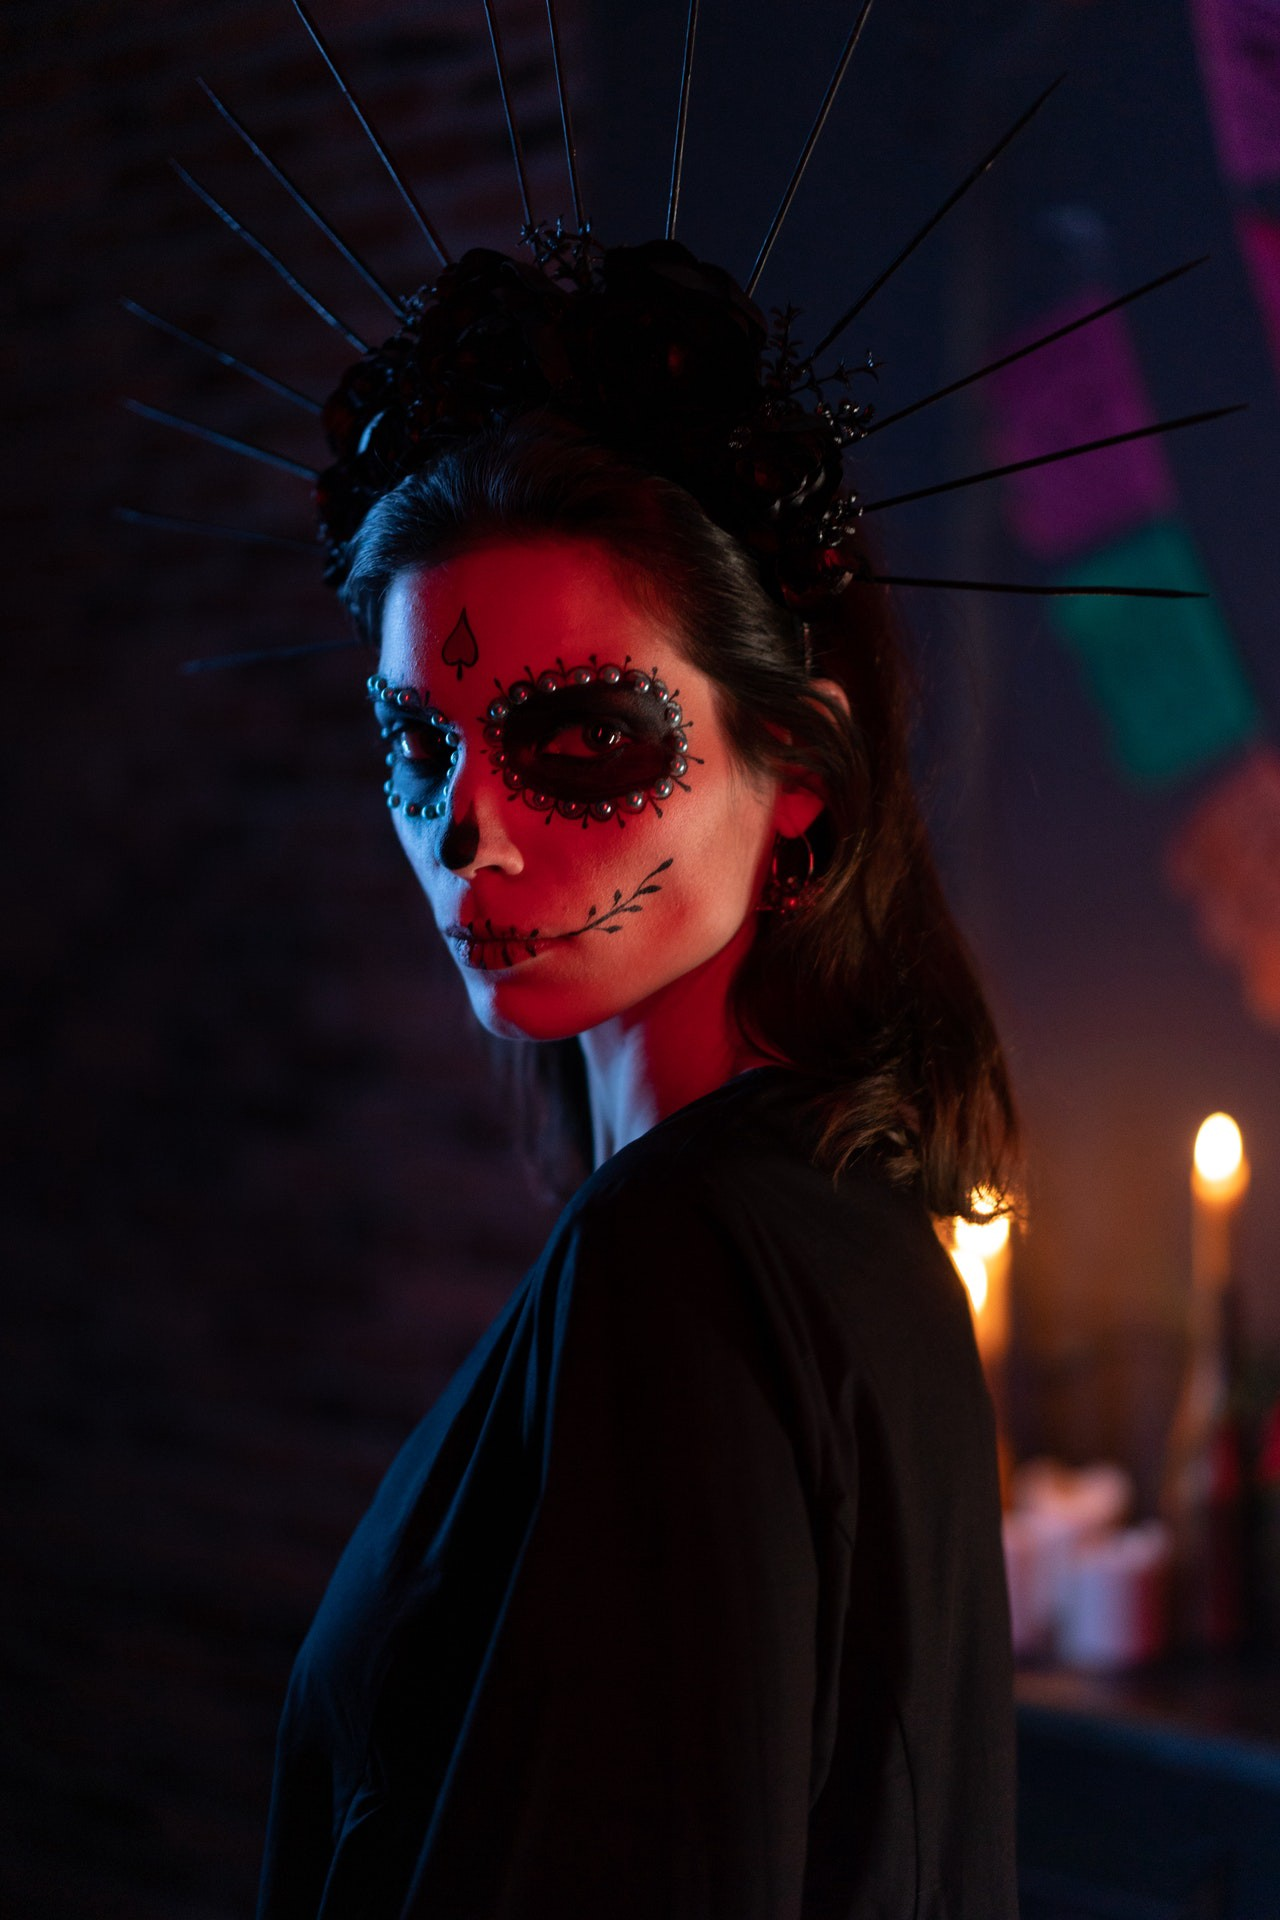 Woman in Mexican skull makeup wearing a black dress in a dimly lit room with candles.